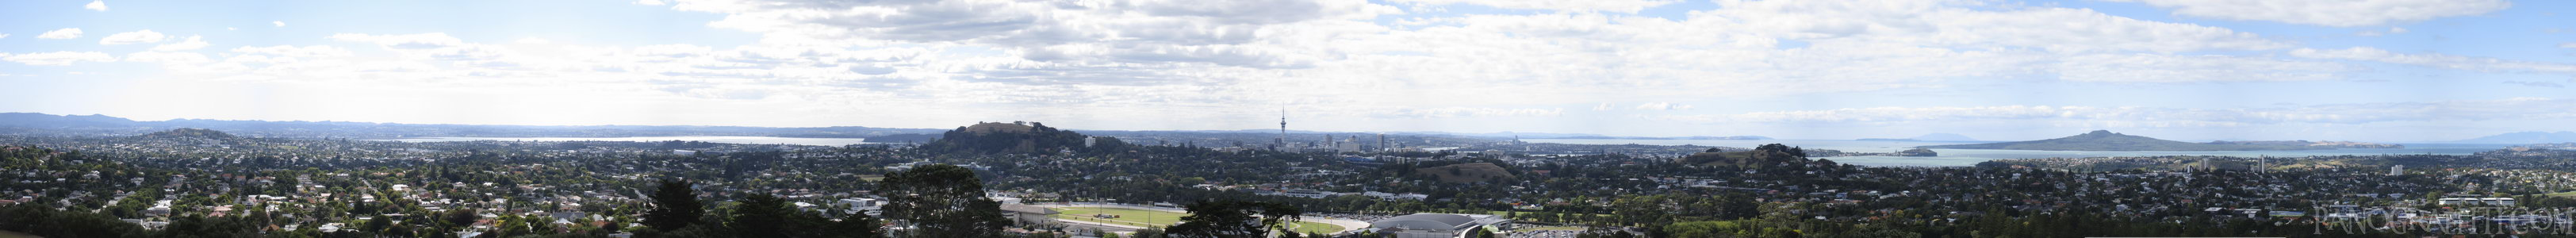 Sky Tower from One Tree Hill - The iconic Sky Tower in the center of the Auckland skyline as seen from the peak of One Tree Hill